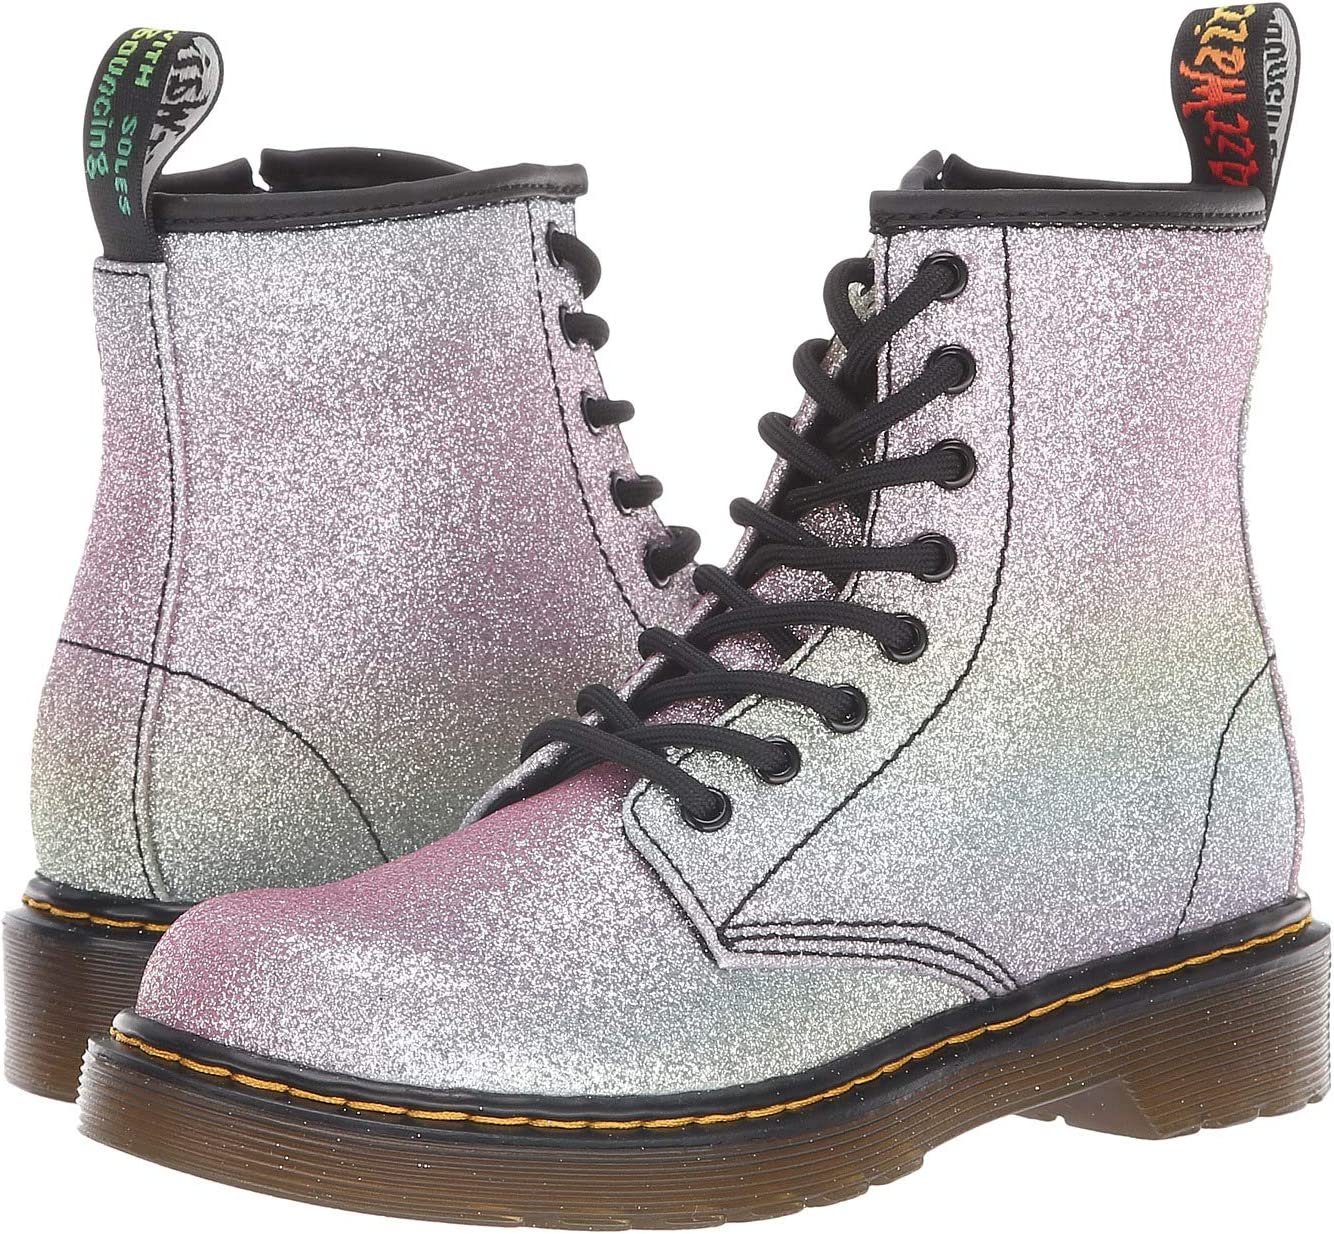 b407348110c6 Dr. Martens Boots, Shoes, and More | Zappos.com